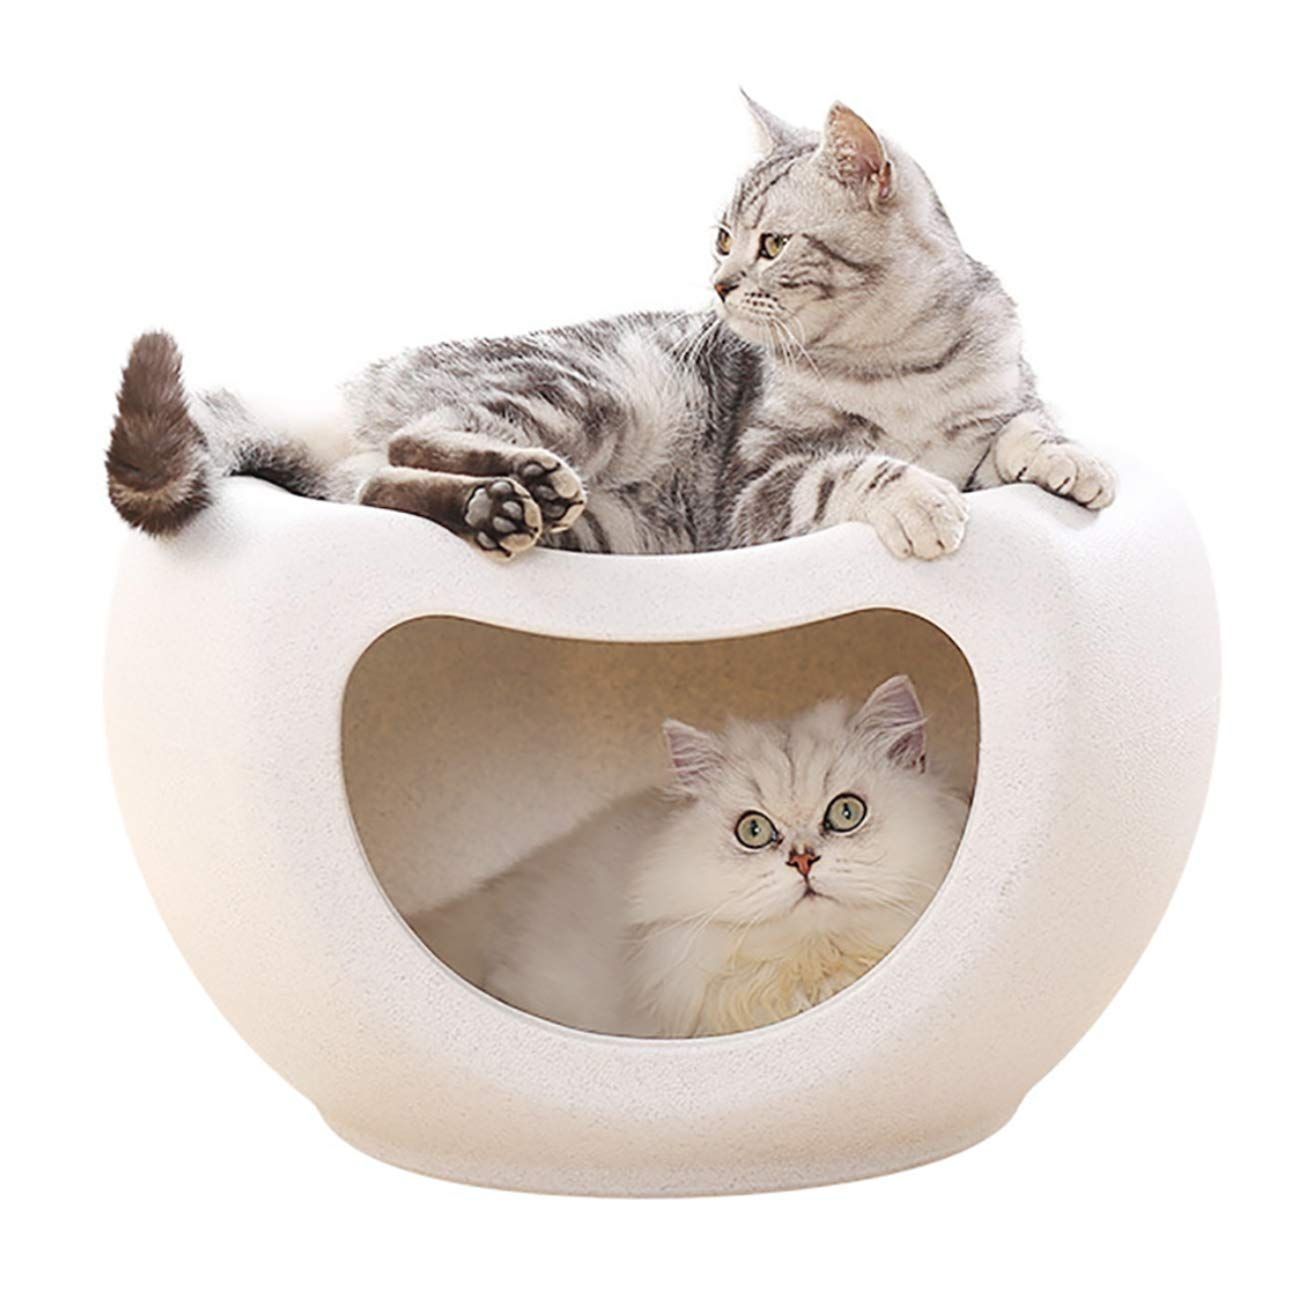 Uheng Pet Dogs Cats Bed Cave Tent House Nest Home Sleeping Bag Tunnel For Kittens Seat Place Stool 19x12x11 Inch Sincerely Hope Th Cat Bed Pets Pets Cats